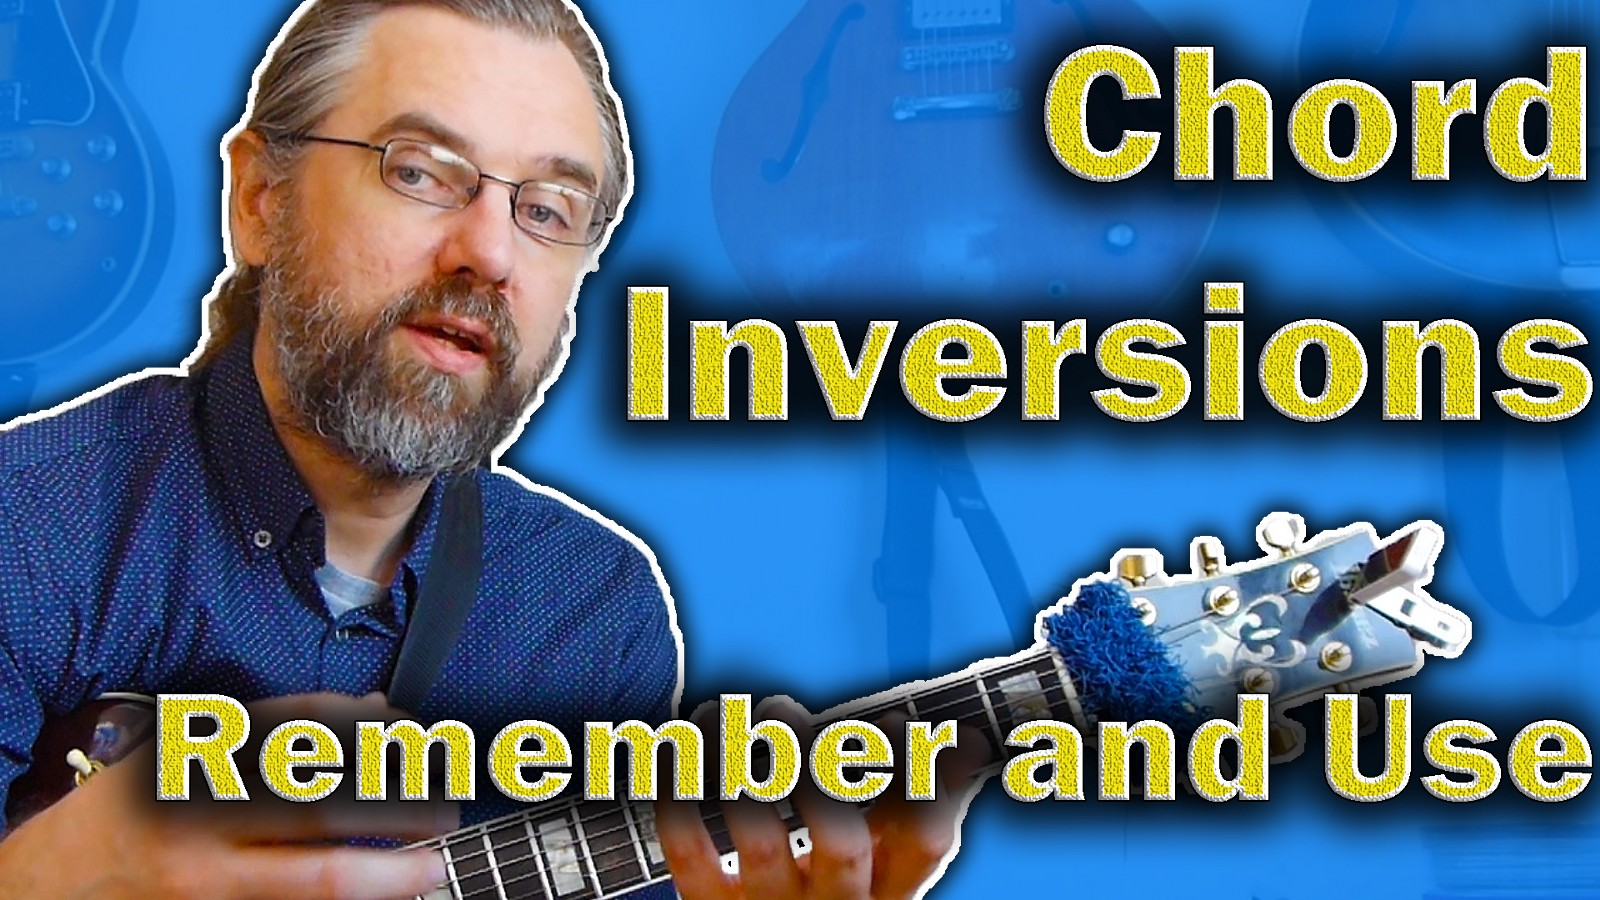 Chord Inversions On Guitar How To Learn Memorize And Use Jazz Chords